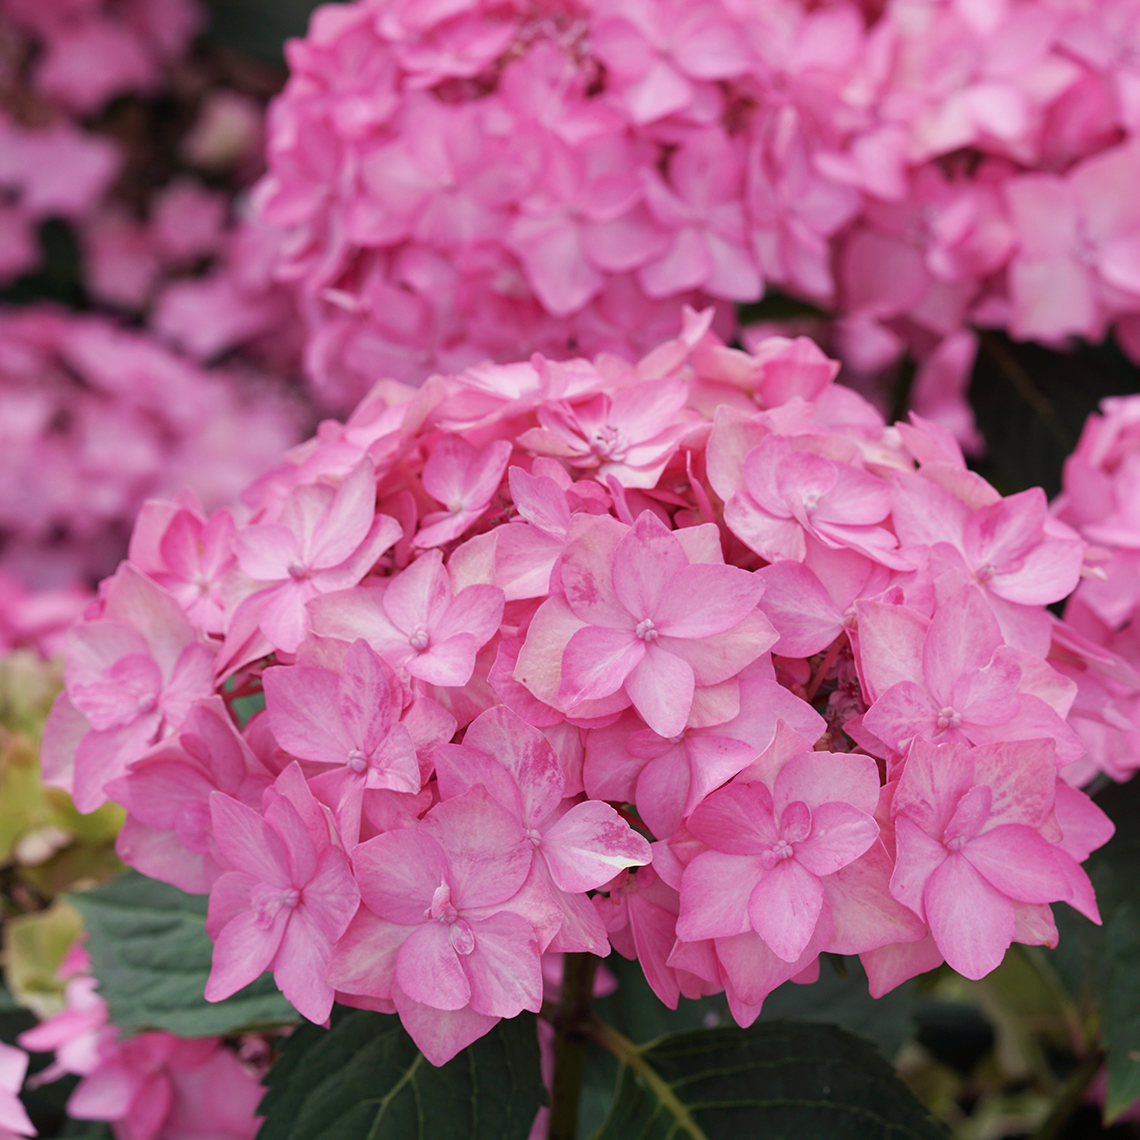 Let's Dance Cancan hydrangea has bright pink lacecap flowers